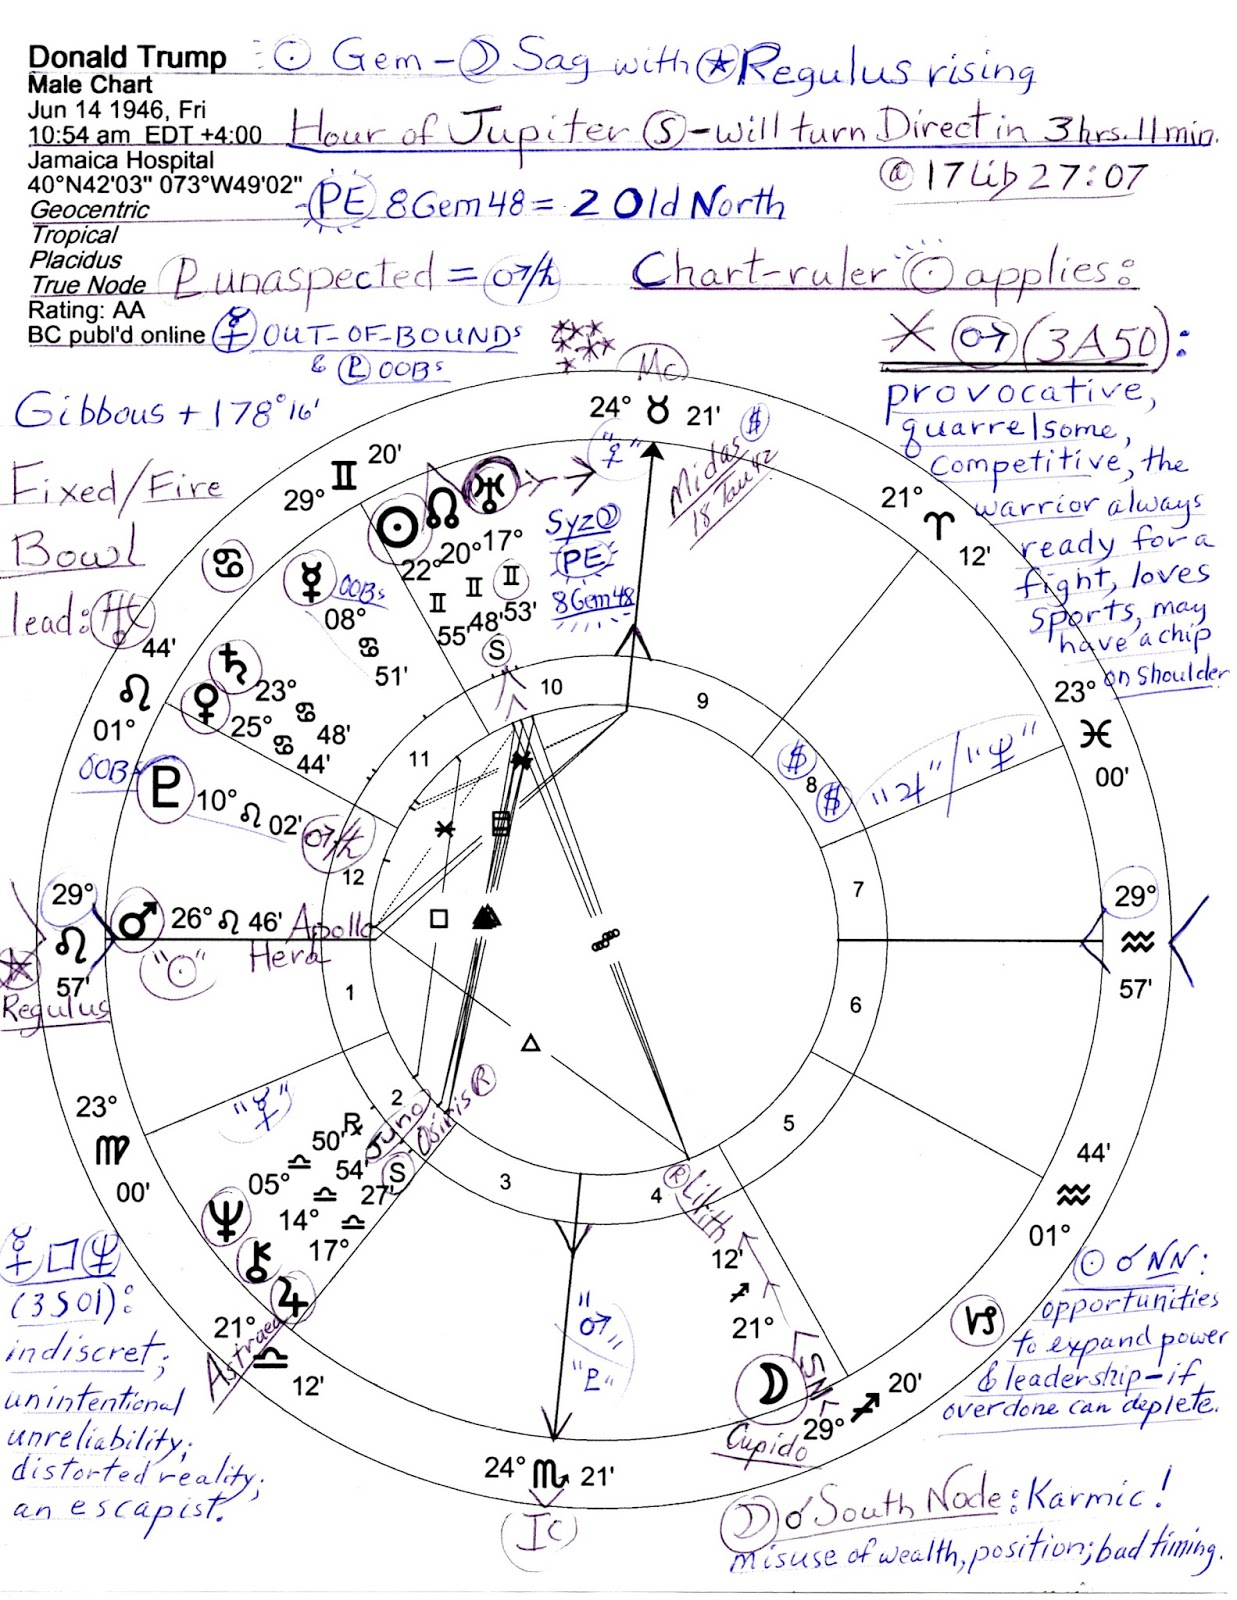 Stars over washington synastry grid inauguration 2017 w mr astro notes on his natal chart part one chart shown and part two with his sun moon personality blend nvjuhfo Gallery